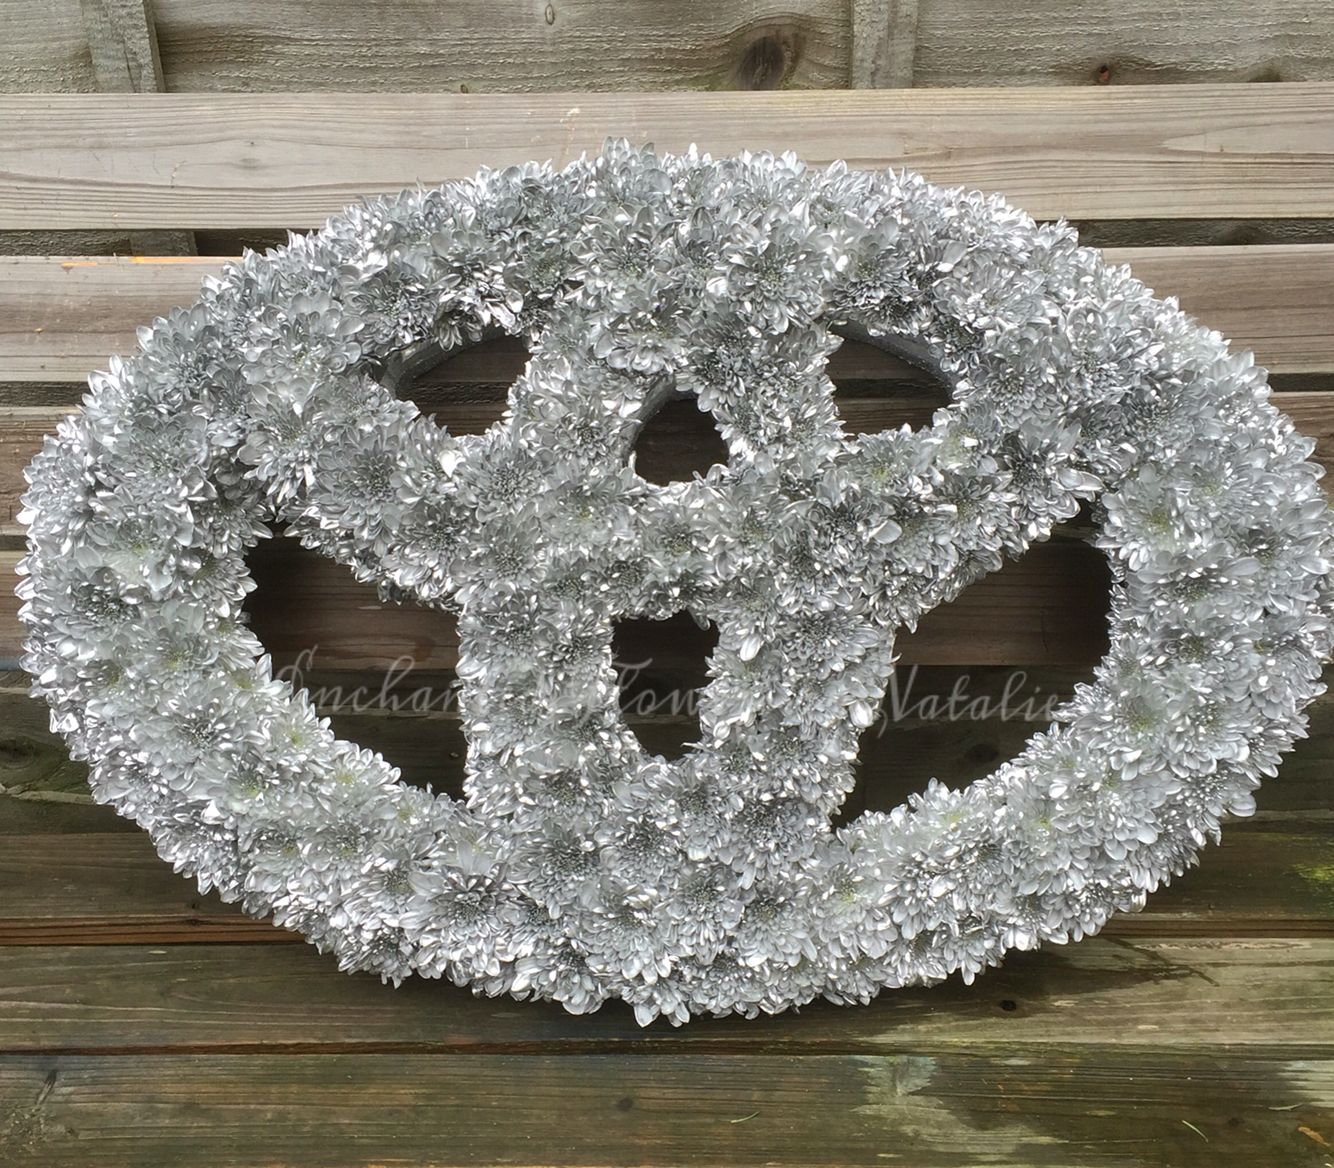 Toyota car badgesymbol funeral tribute bespoke wedding funeral toyota car badgesymbol funeral tribute bespoke wedding funeral flowers enchantedflowersbynatalie izmirmasajfo Image collections